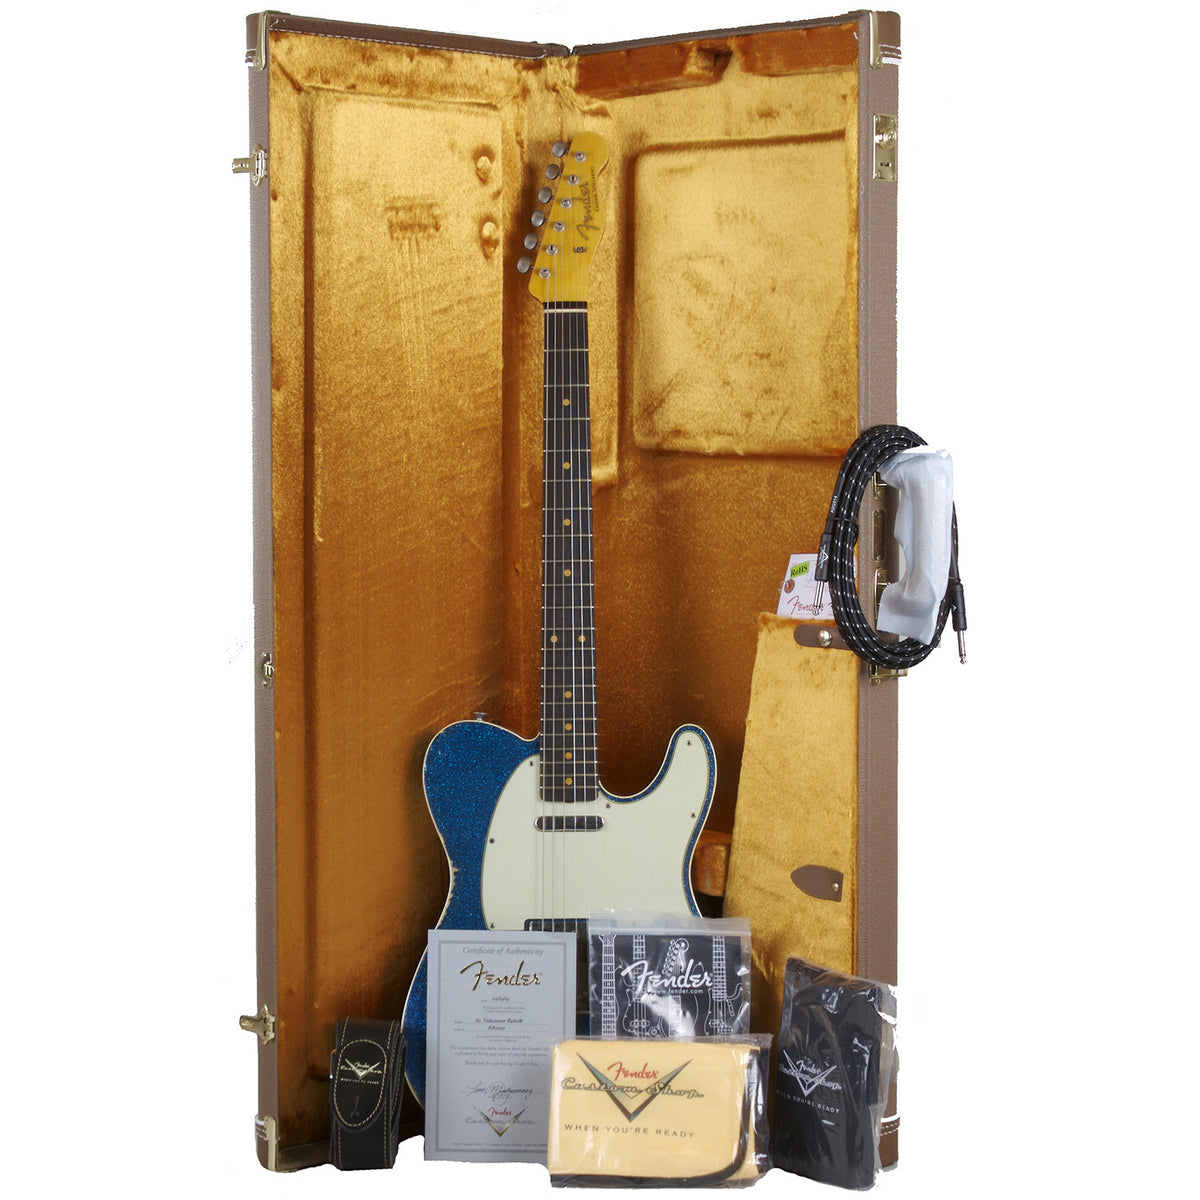 Fender Custom Shop Blue Sparkle '60 Telecaster Custom Relic - Garrett Park Guitars  - 10